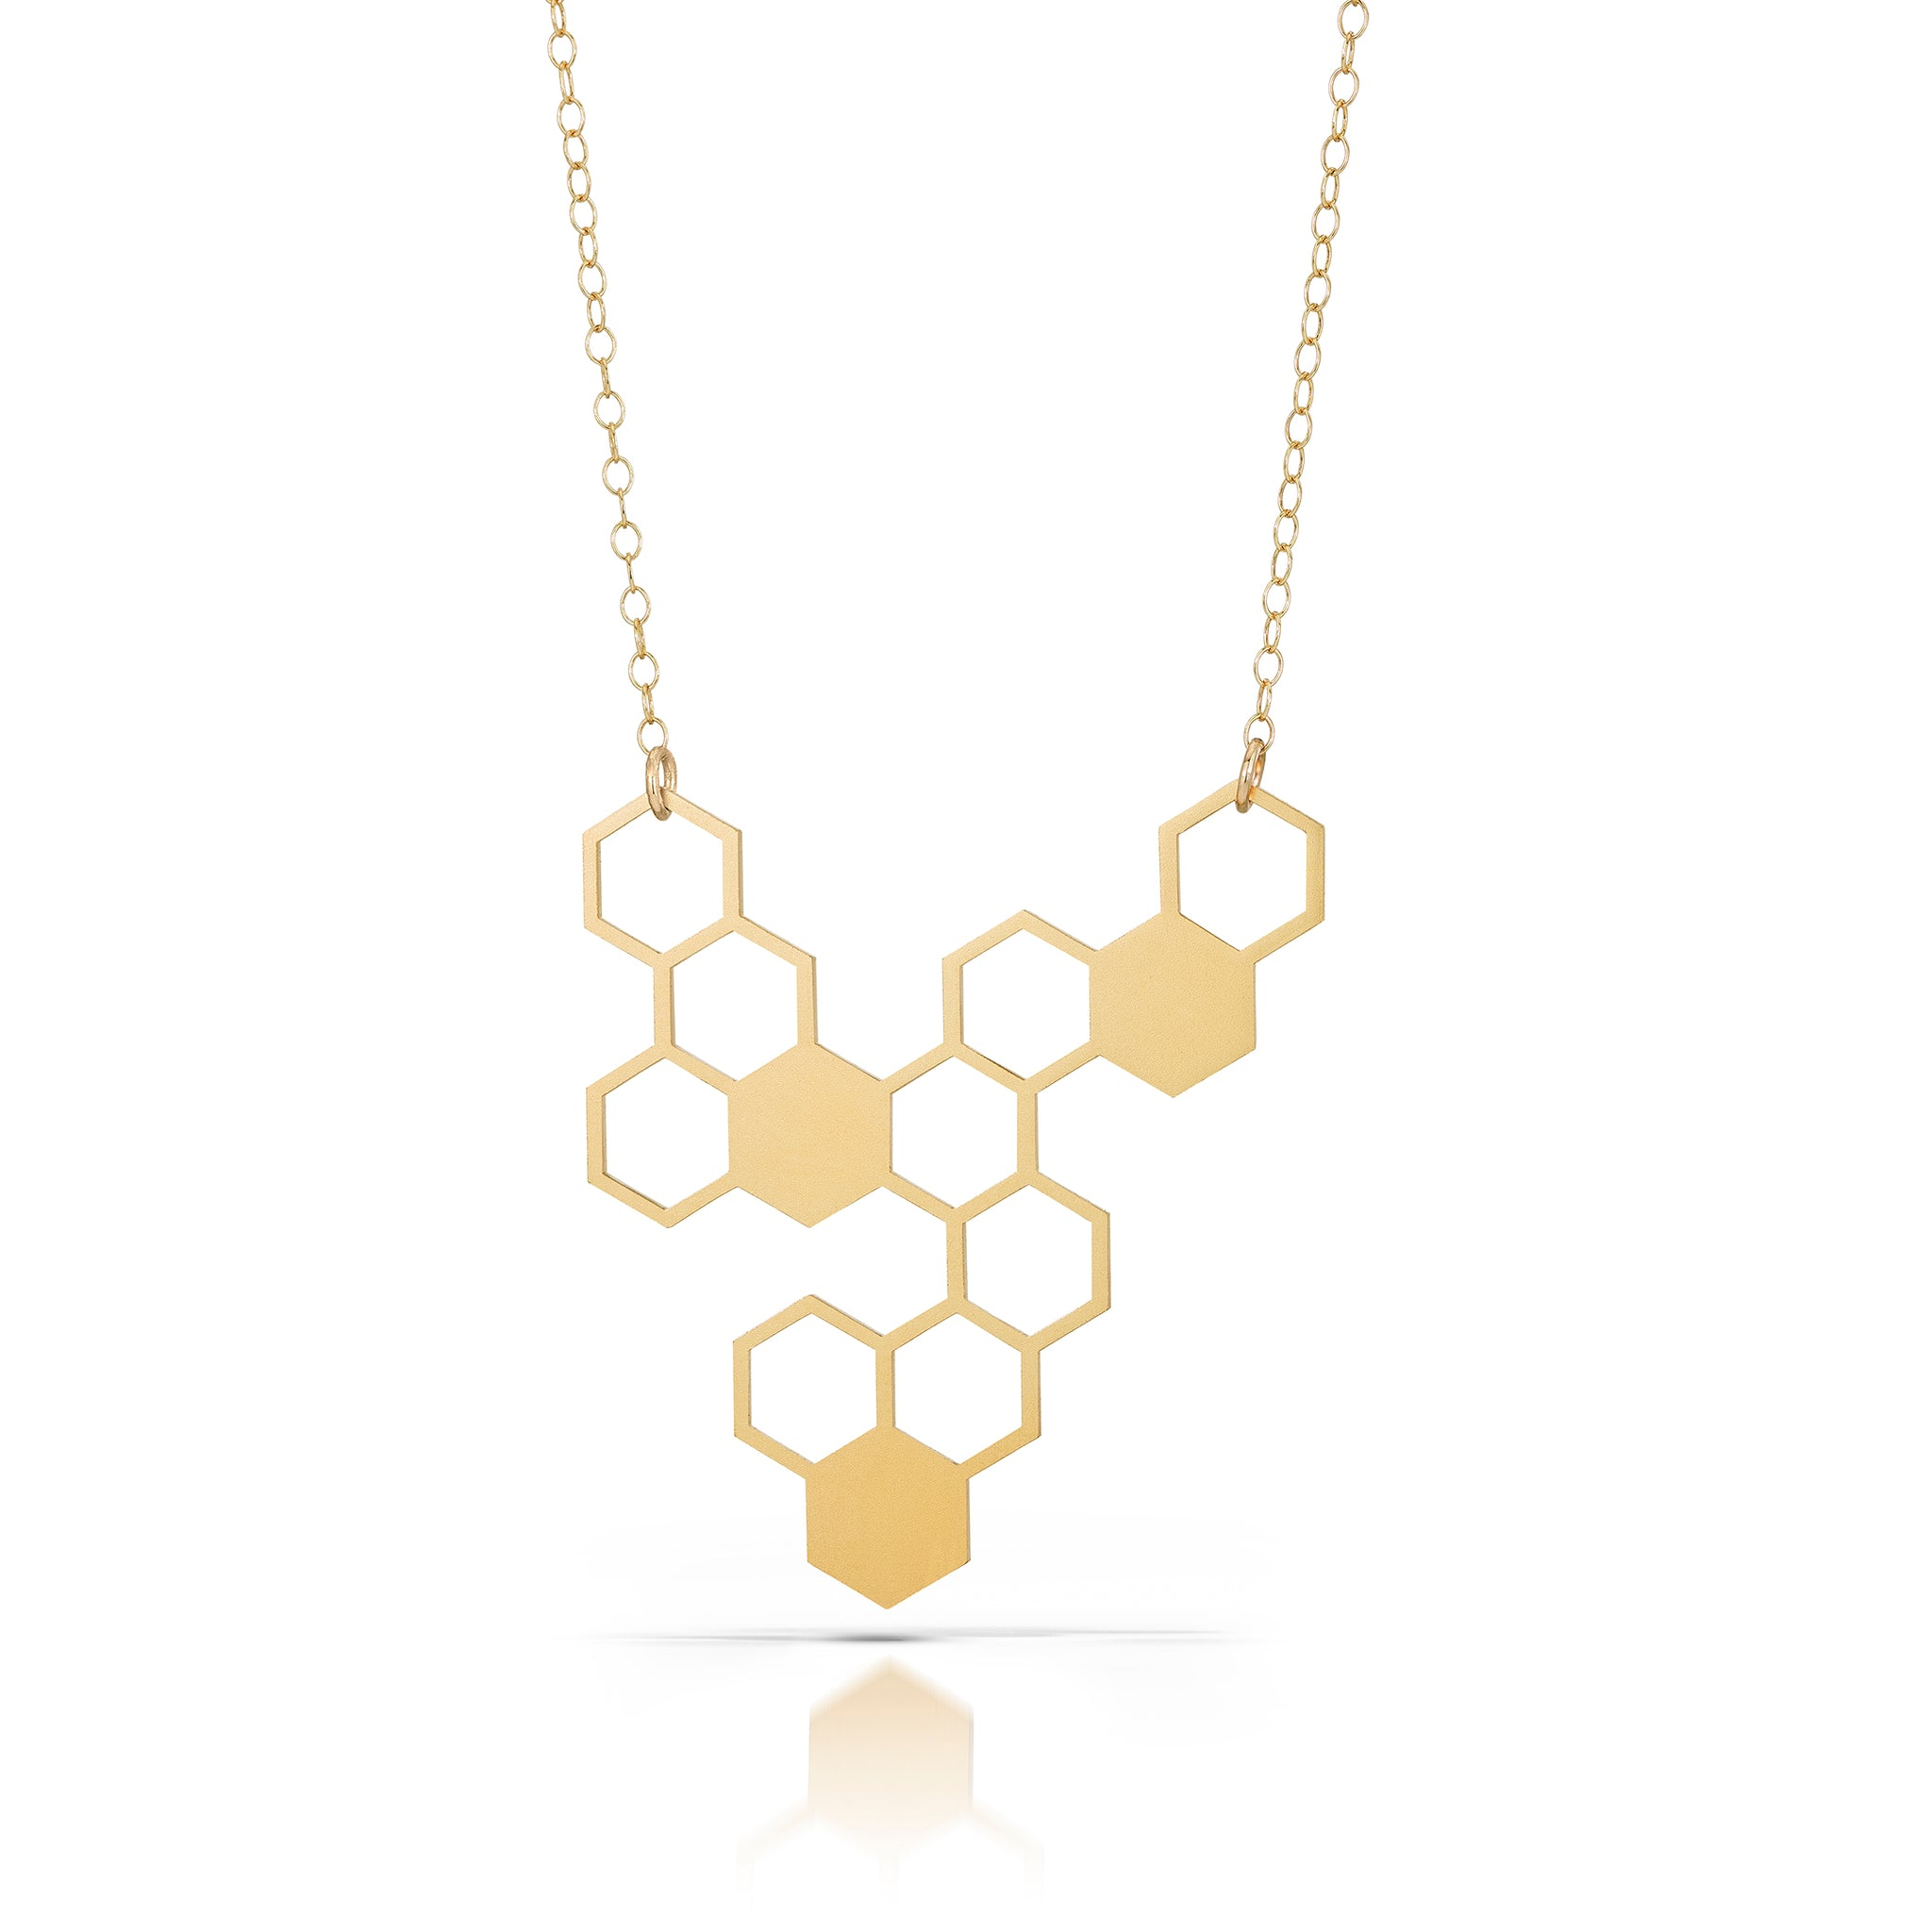 hive necklace, 18k gold-plated